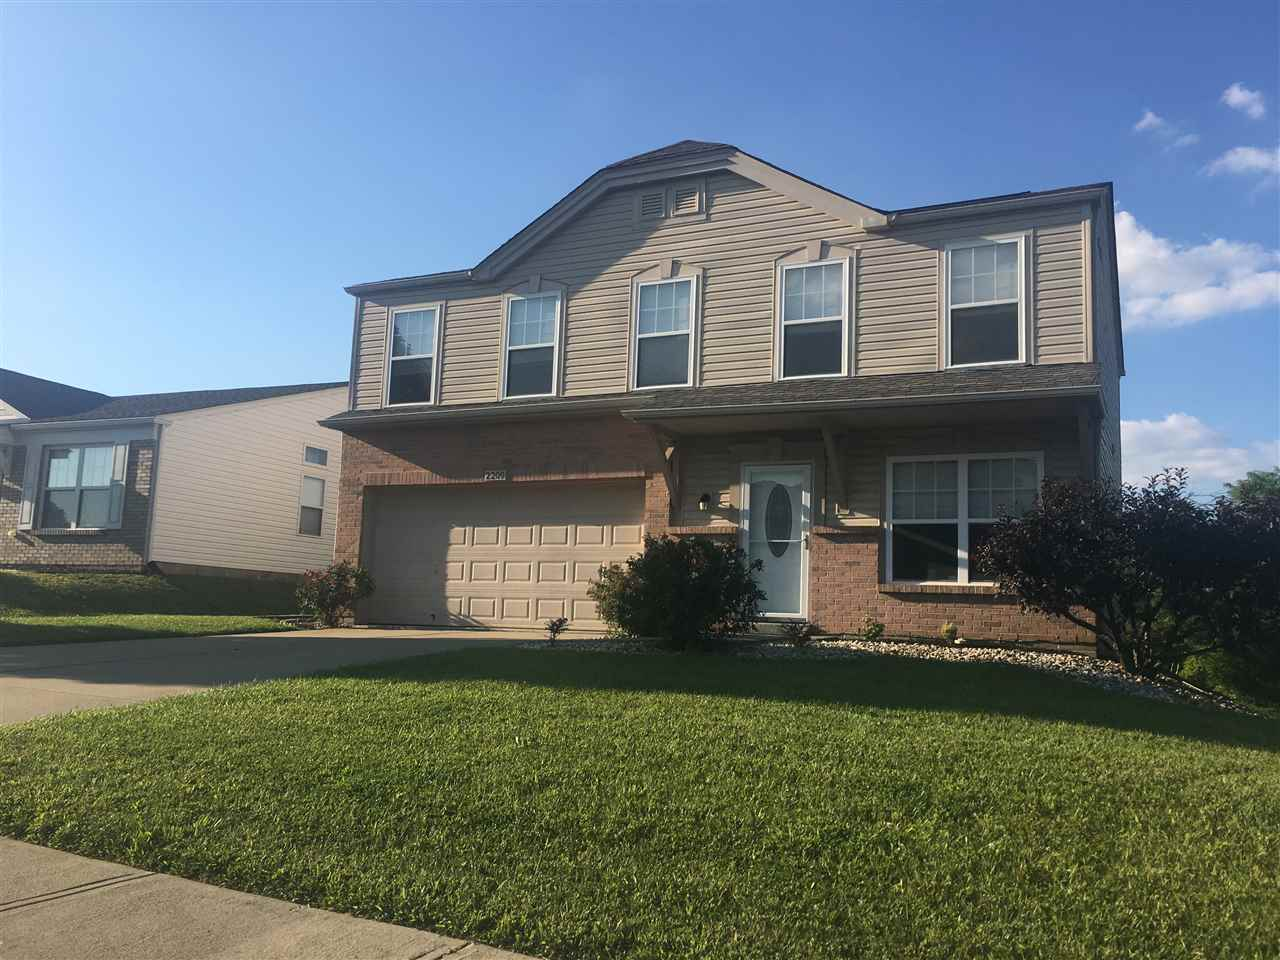 Photo 1 for 2209 Antoinette Way Union, KY 41091